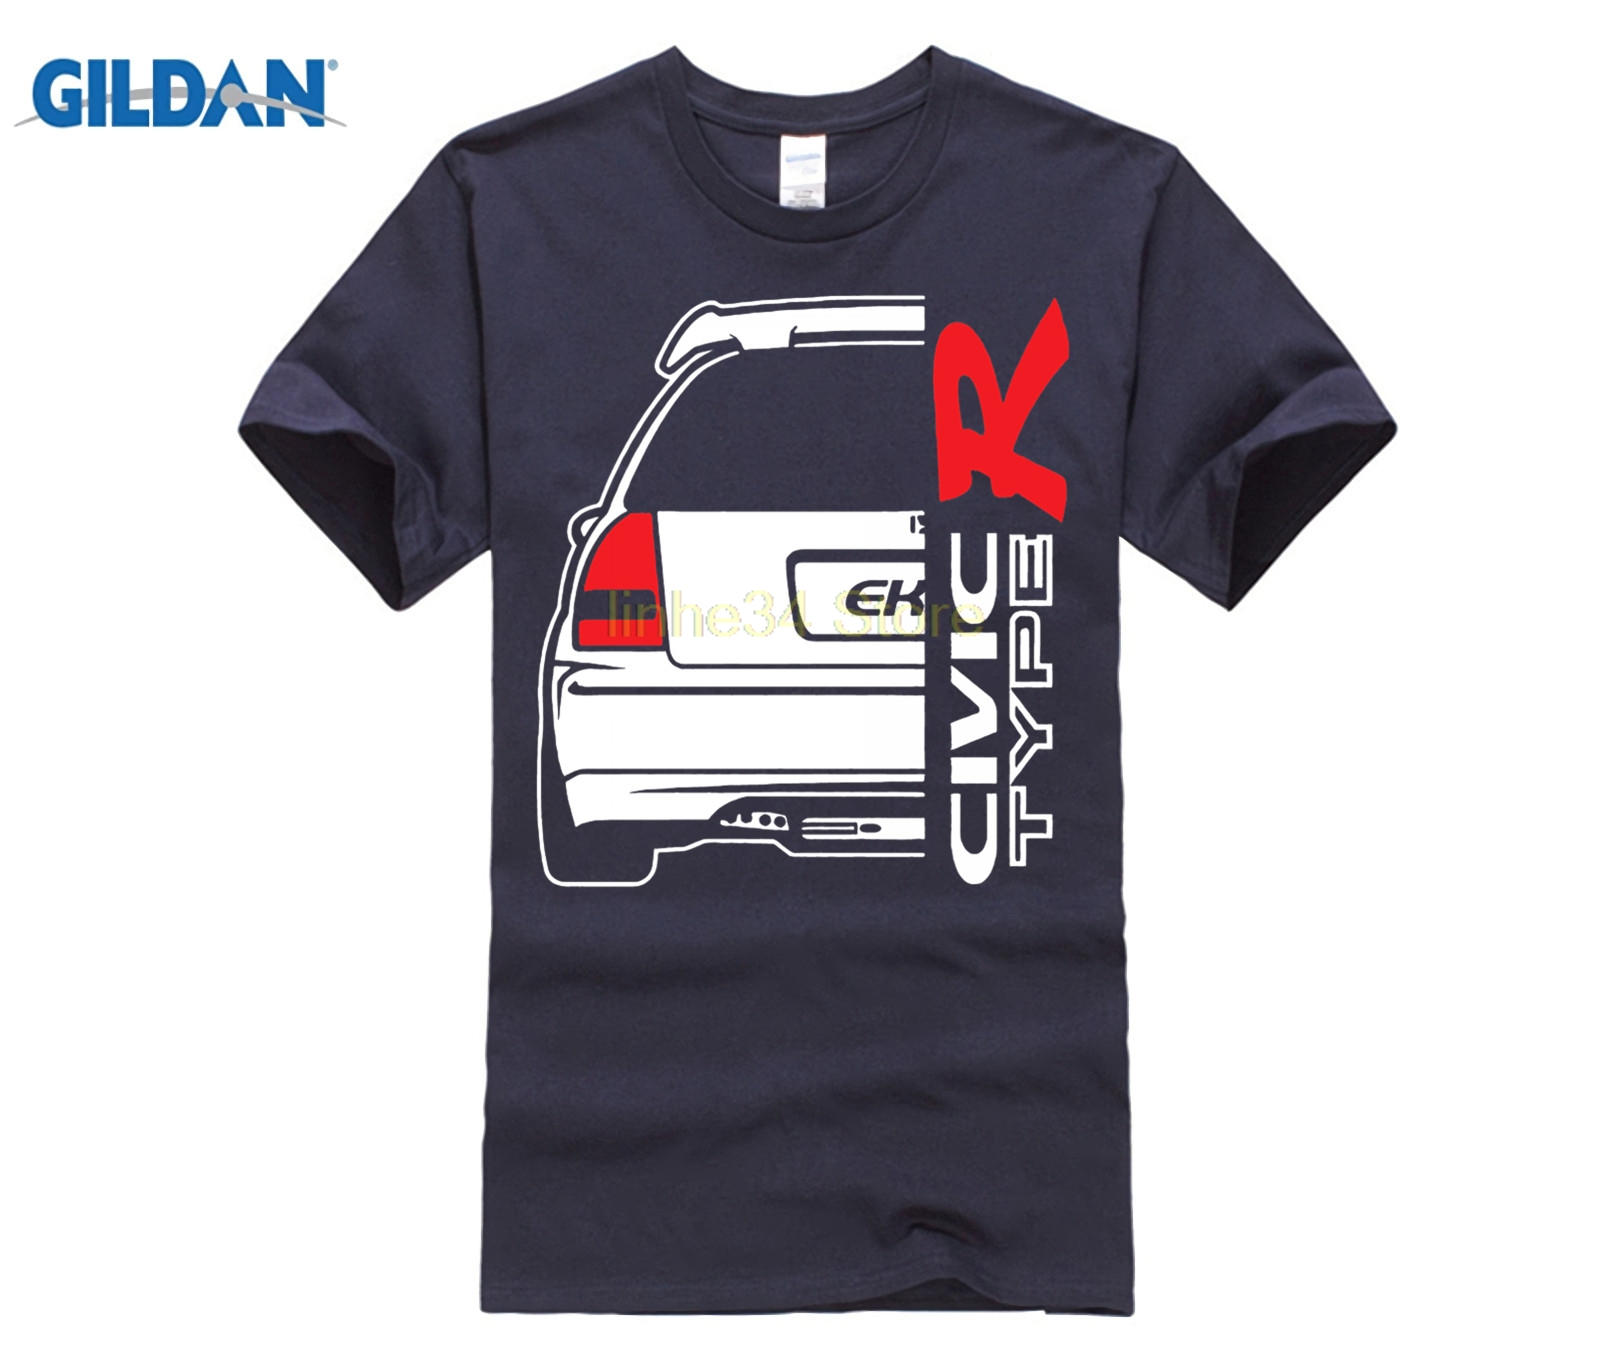 Gildan Gildan New Honda Civic Type R Ek9 T Shirt In T Shirts From